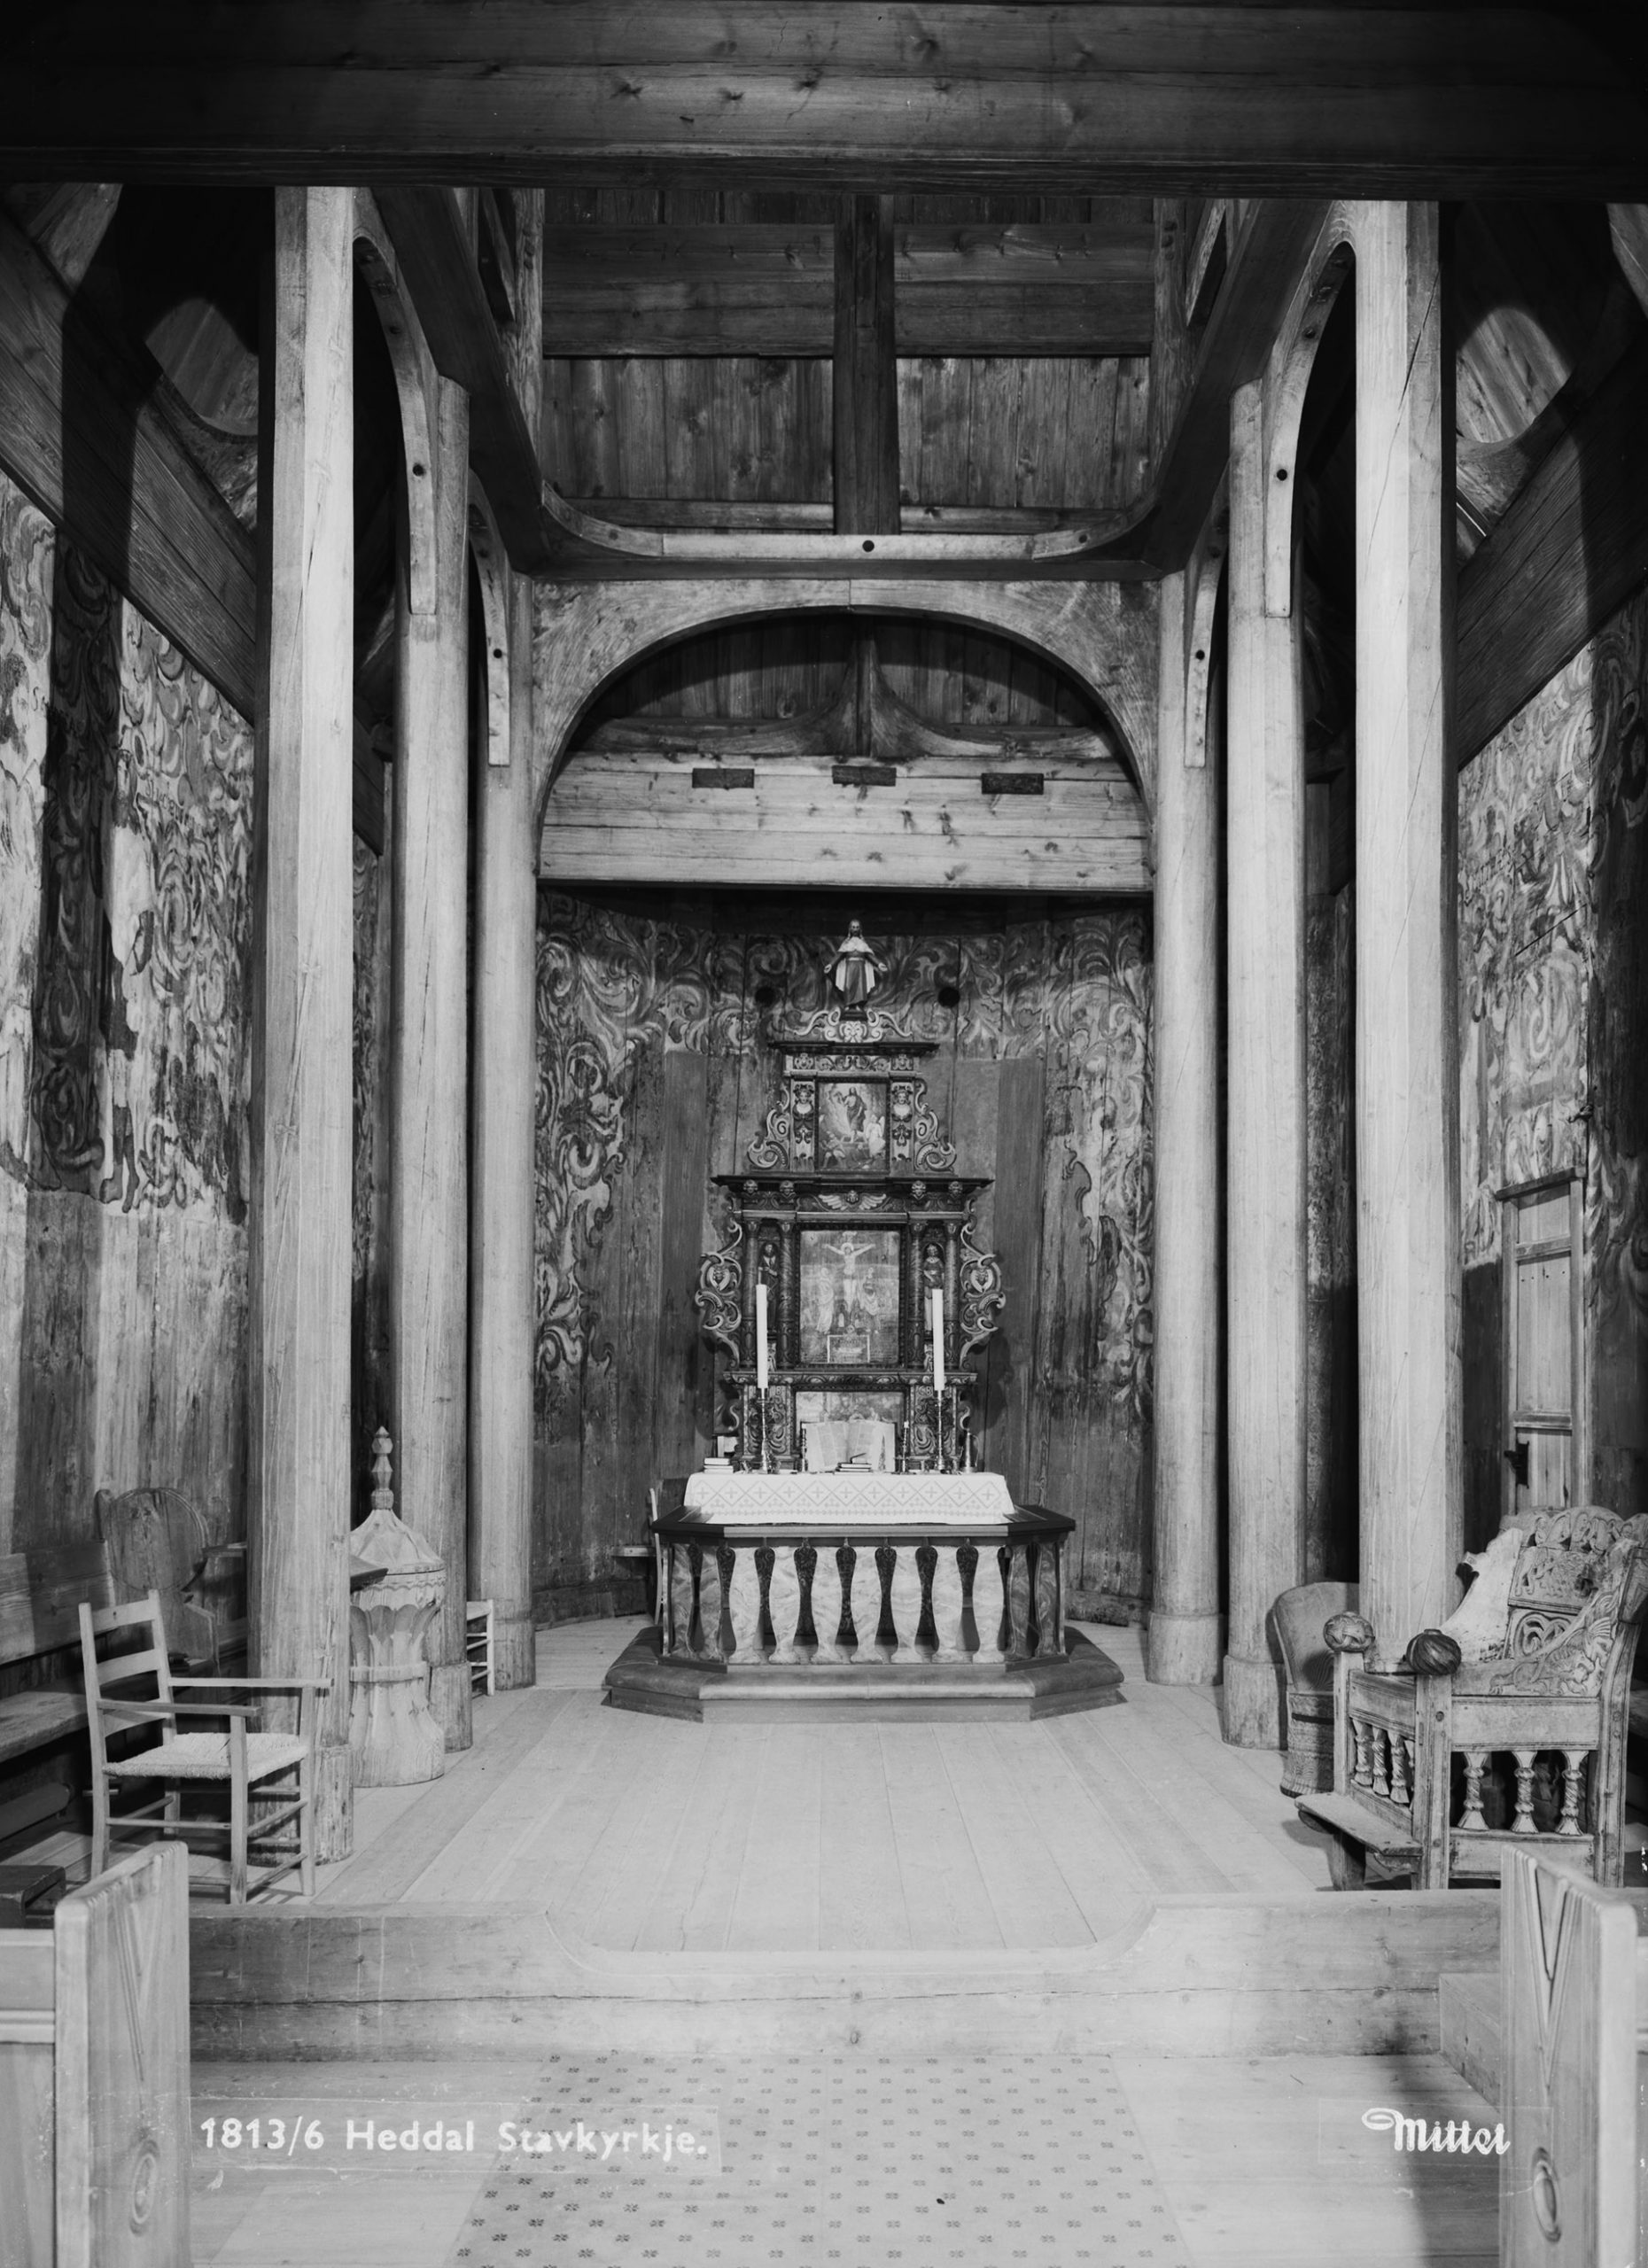 The Heddal stave church - the interior and its altar. | Photo: Mittet & Co. AS - nb.no cc pdm.